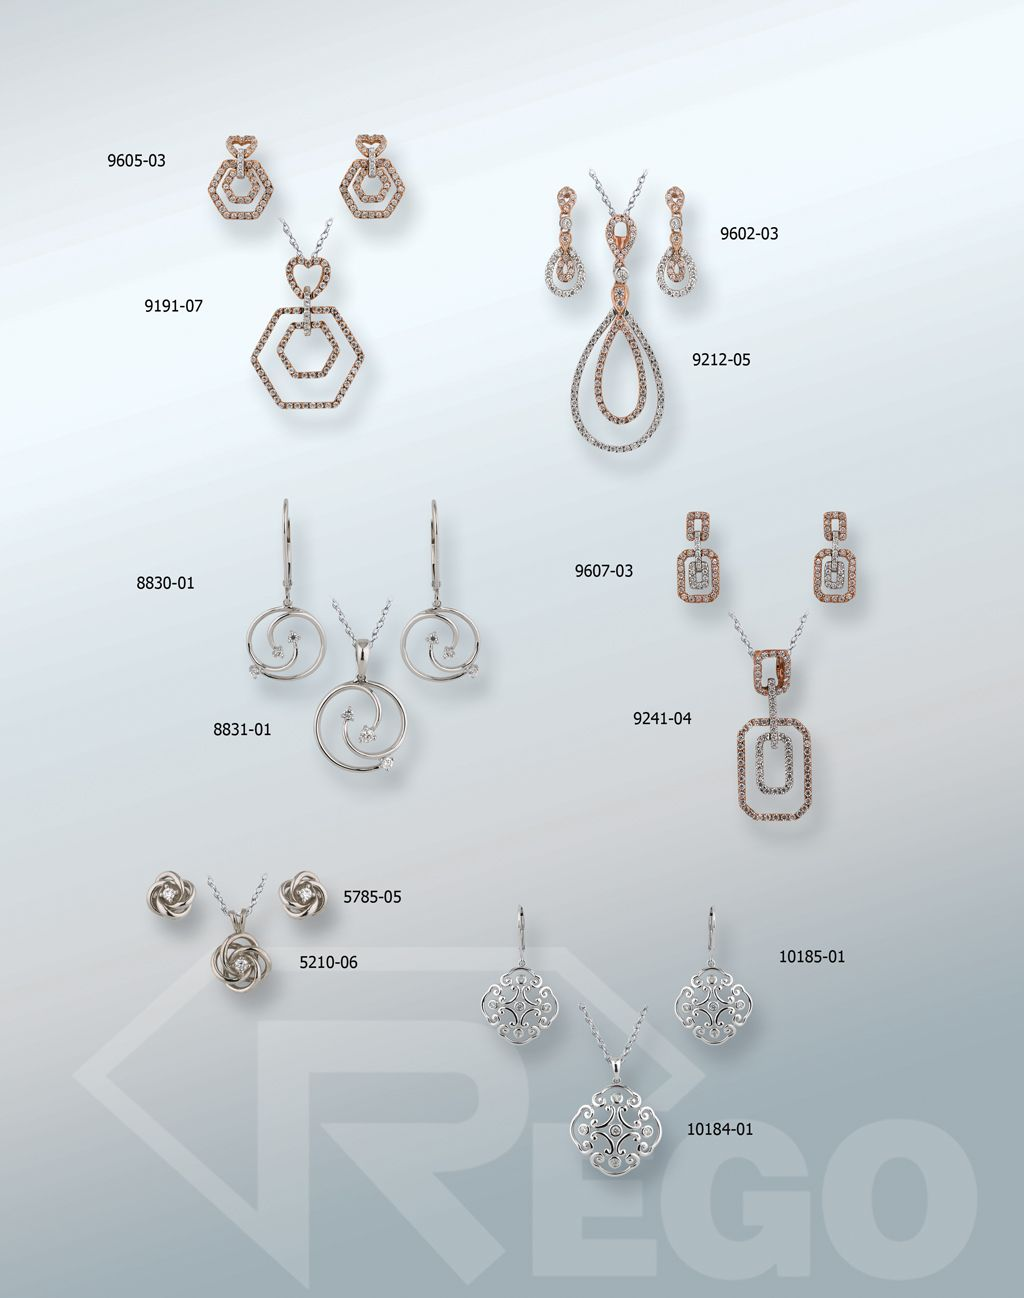 Designs by Rego rose and yellow gold diamond earring and pendant sets